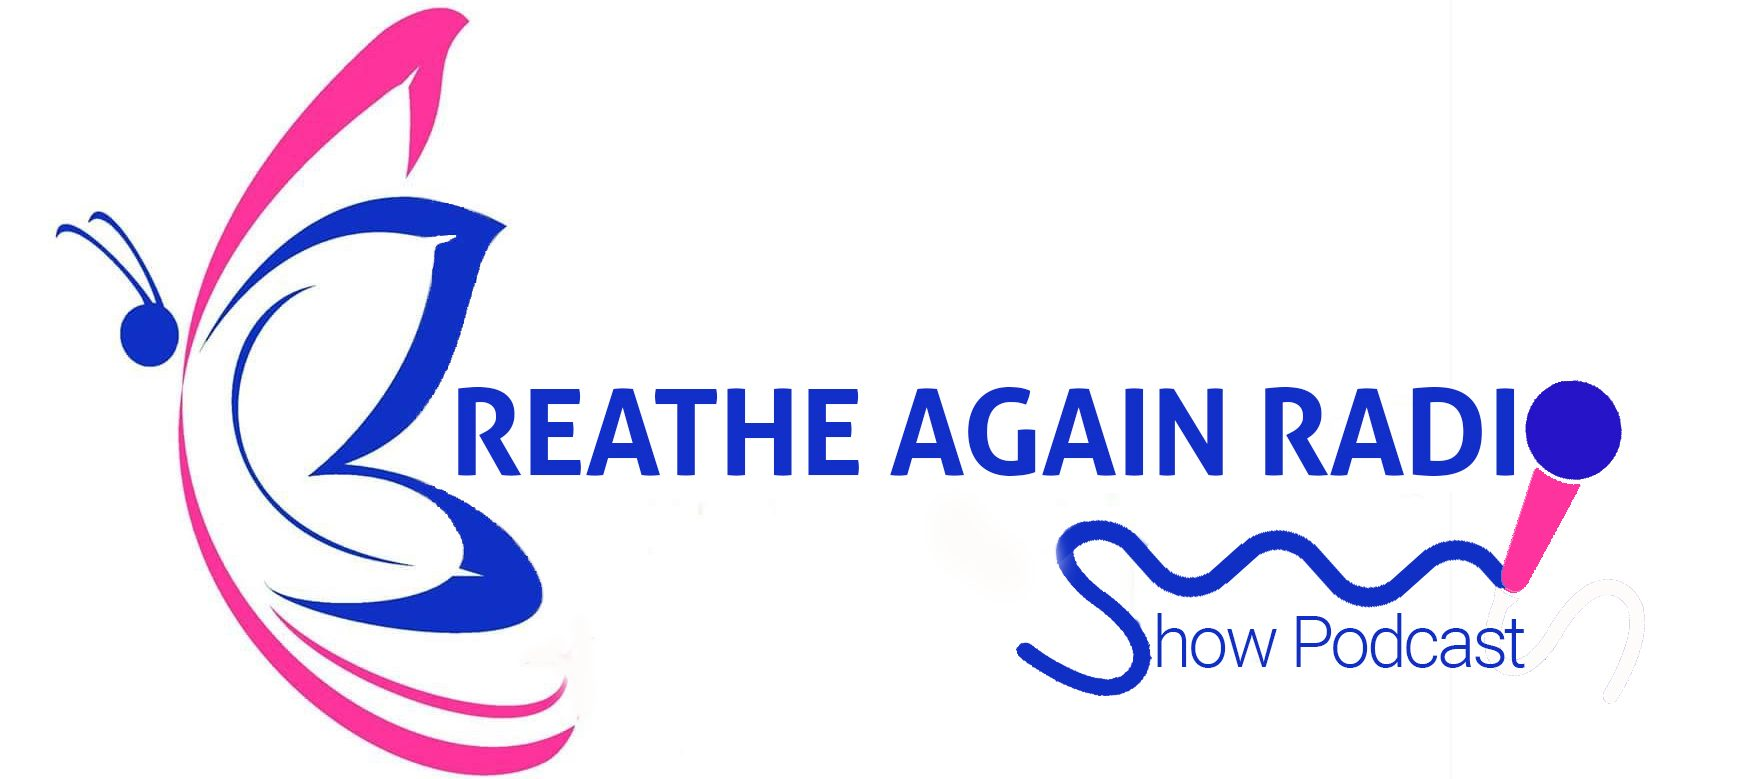 Breathe Again Radio Show Podcast